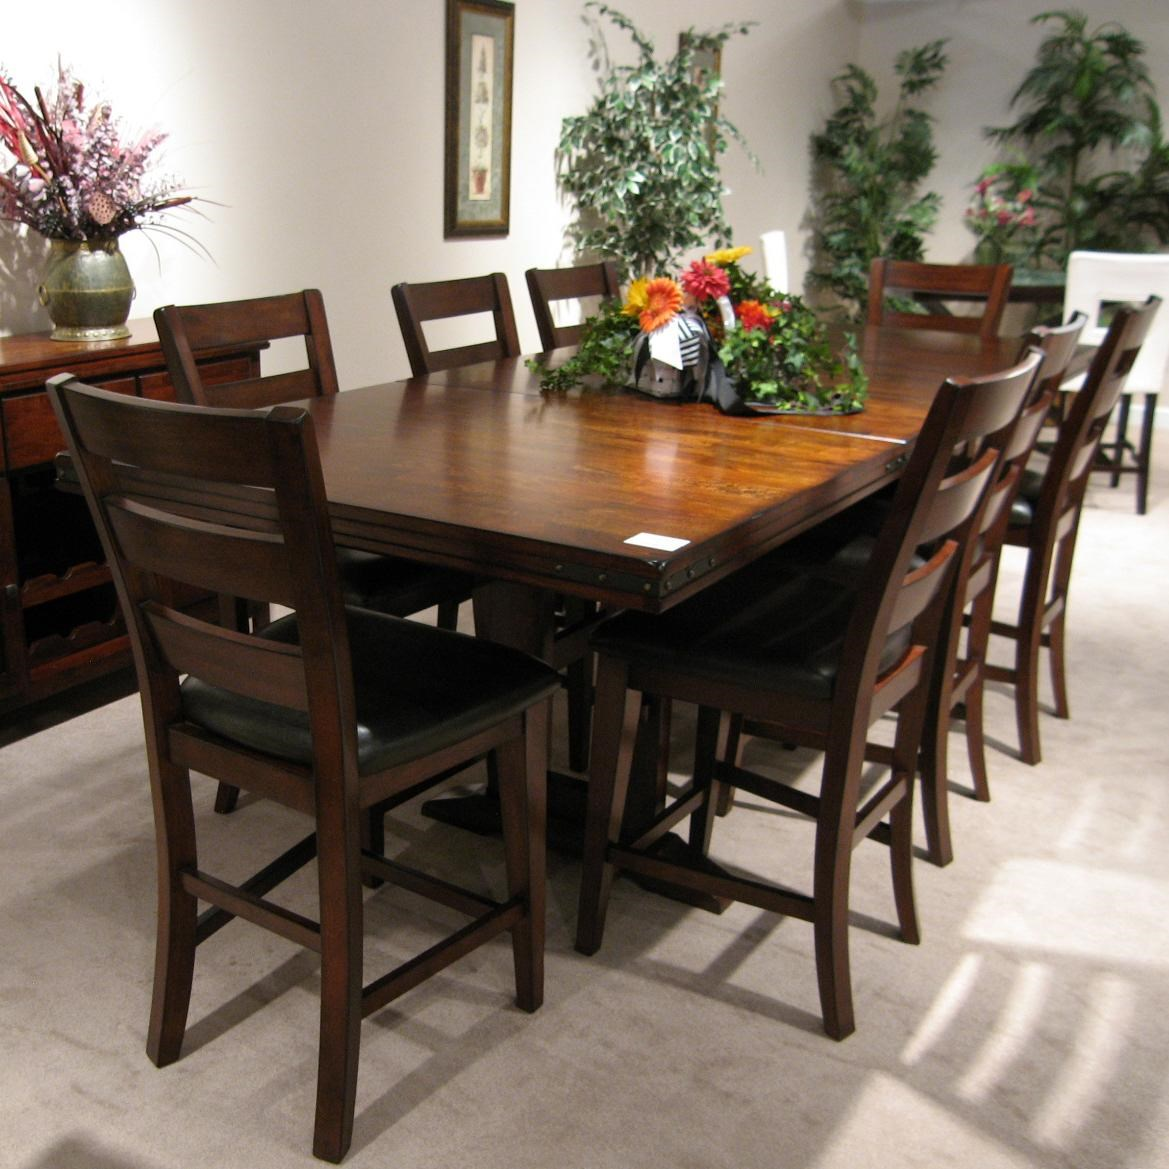 holland house 1268 casual 9 piece dining table and chair set holland house 1268 casual 9 piece dining table and chair set      rh   godbyhomefurnishings com